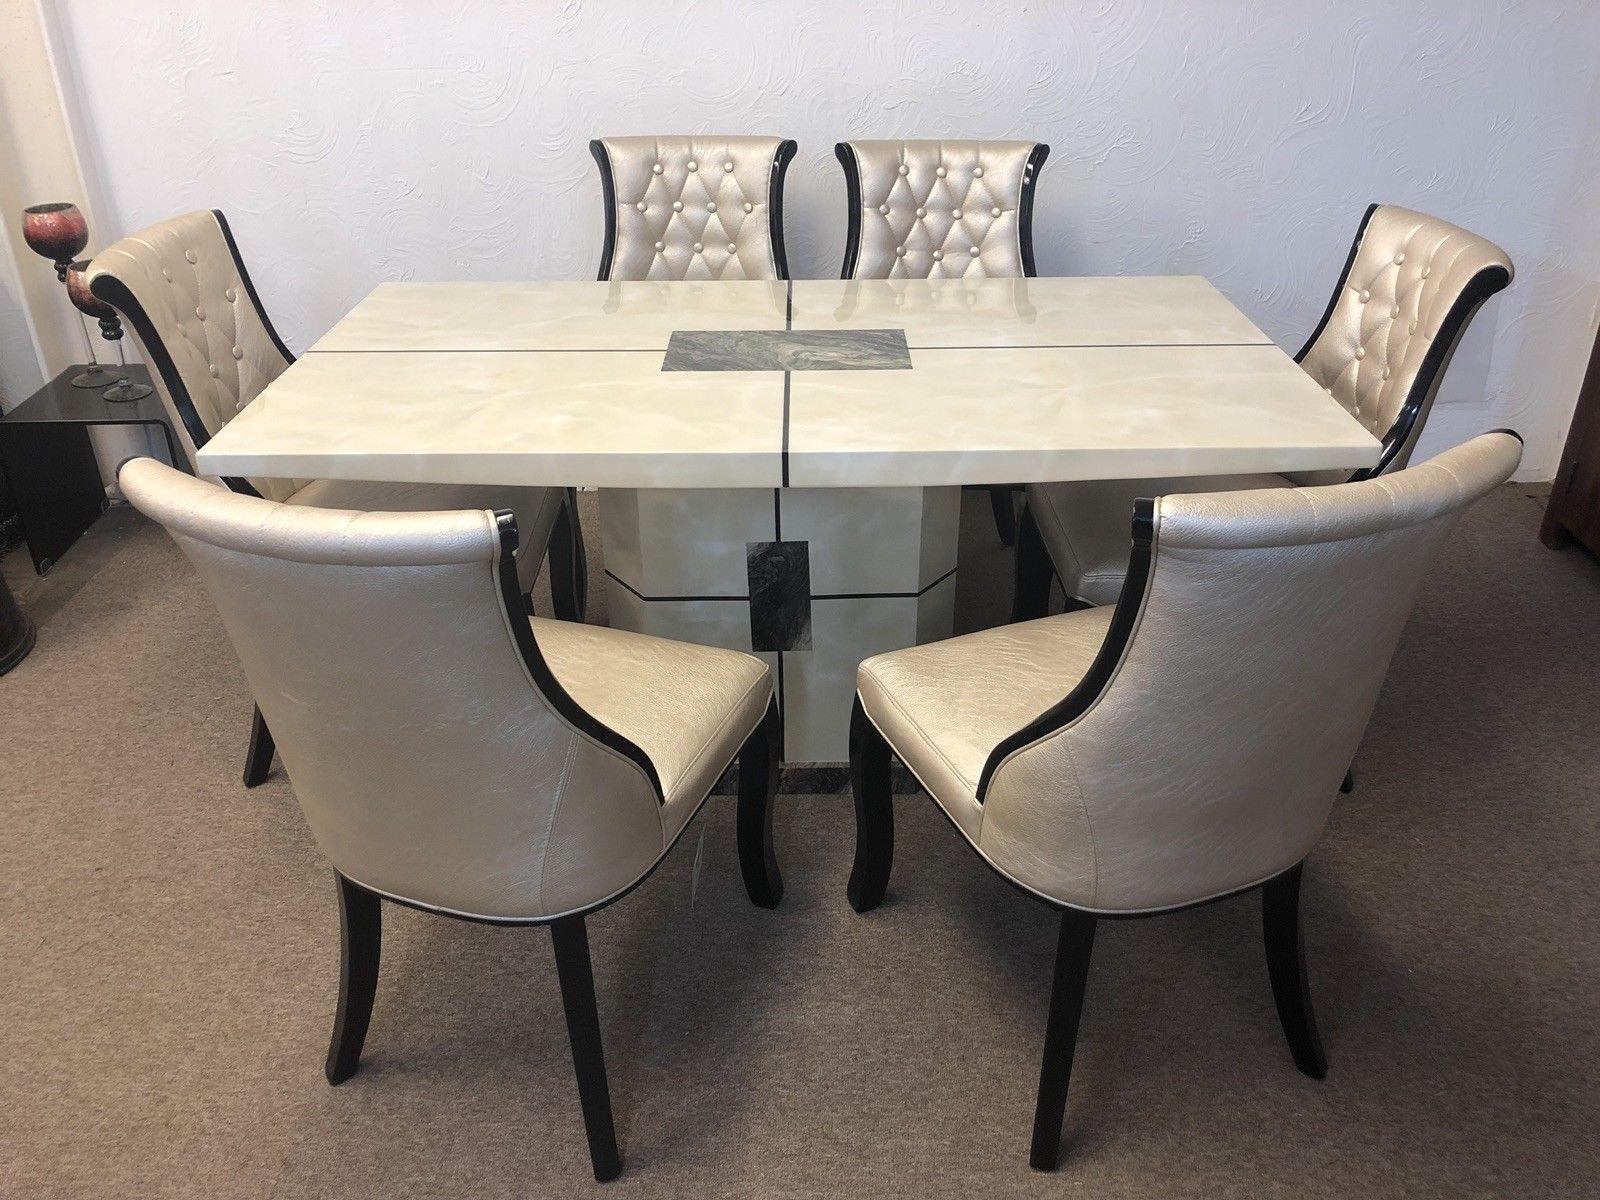 Marble Dining Table And 6 Chairs: Venice 160cm Marble Dining Table And 6 Gold Curveback